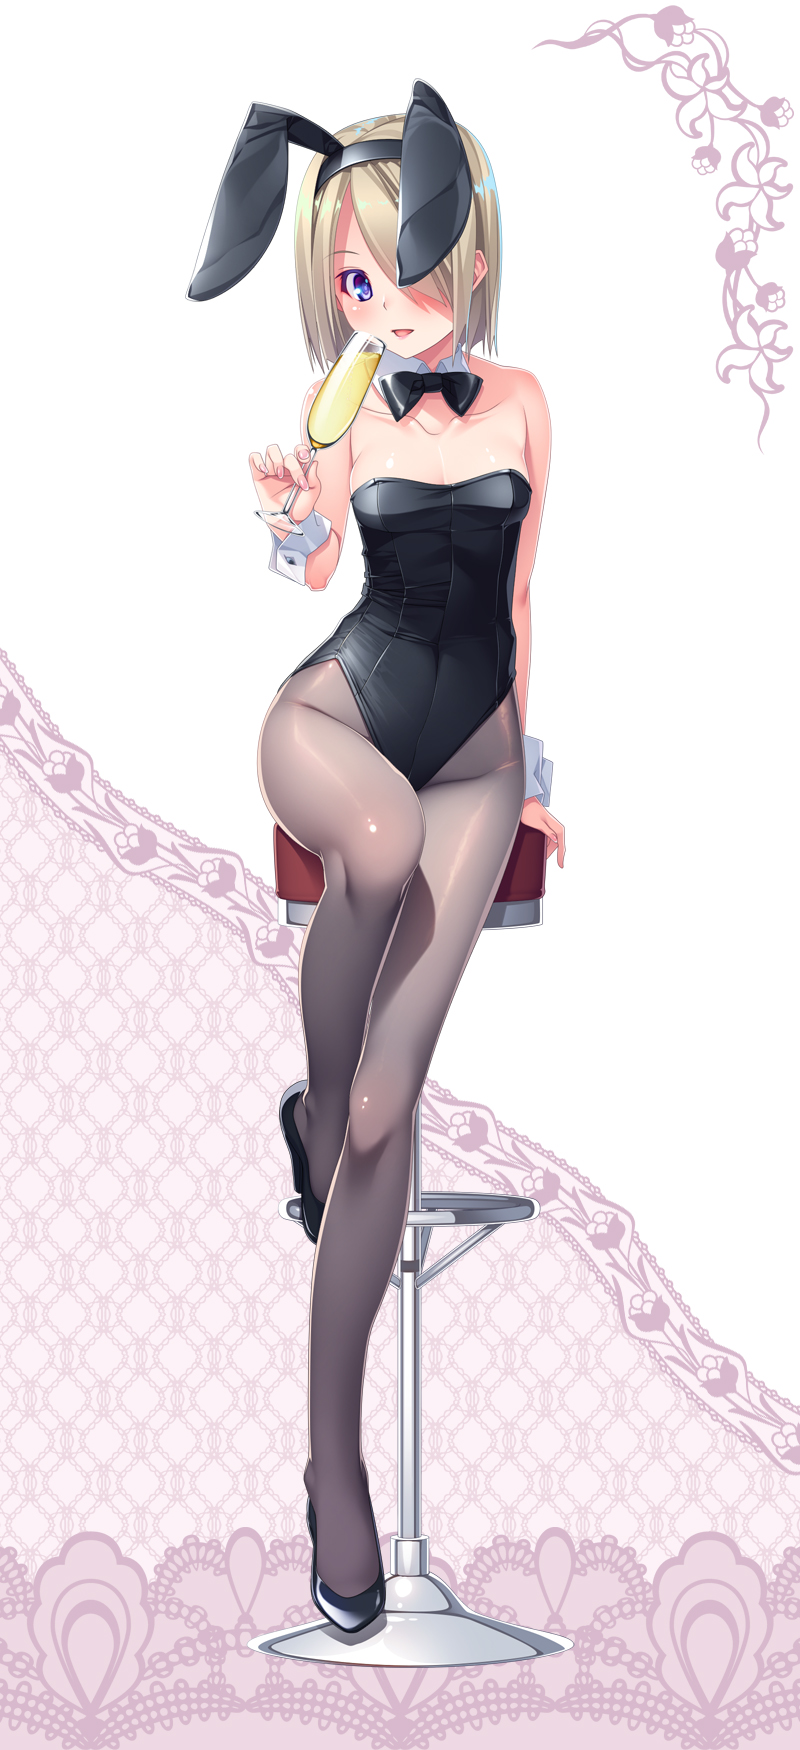 1girl animal_ears black_legwear black_leotard black_neckwear blonde_hair bow bowtie bunny_girl bunnysuit cup detached_collar drinking_glass full_body hair_over_one_eye highres leotard looking_at_viewer nyangoro original pantyhose rabbit_ears short_hair sitting solo stool strapless strapless_leotard violet_eyes wine_glass wrist_cuffs